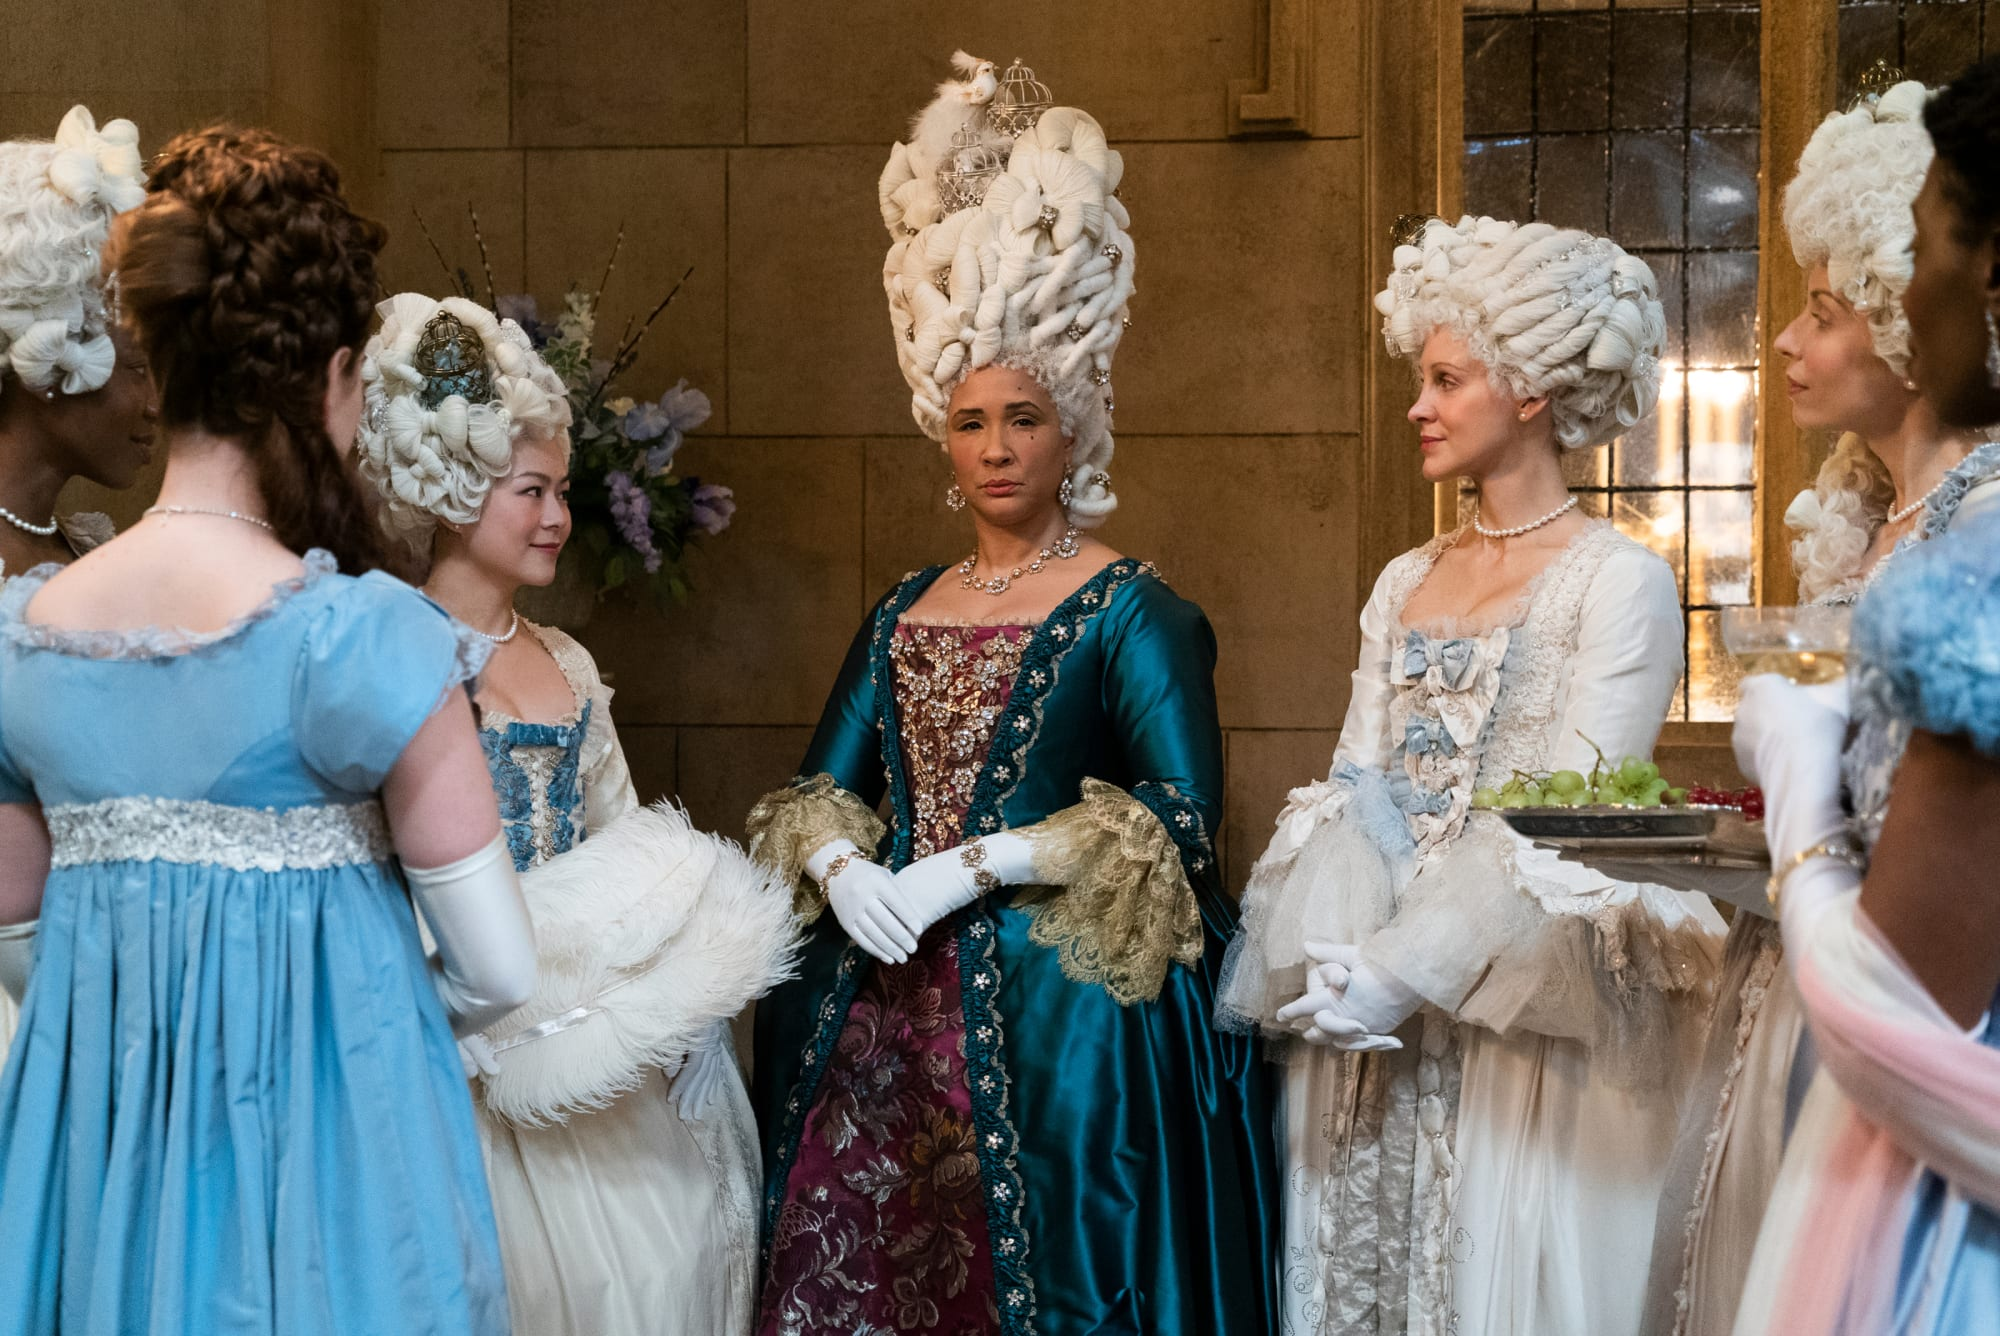 A scene from Bridgerton with the queen and her maids